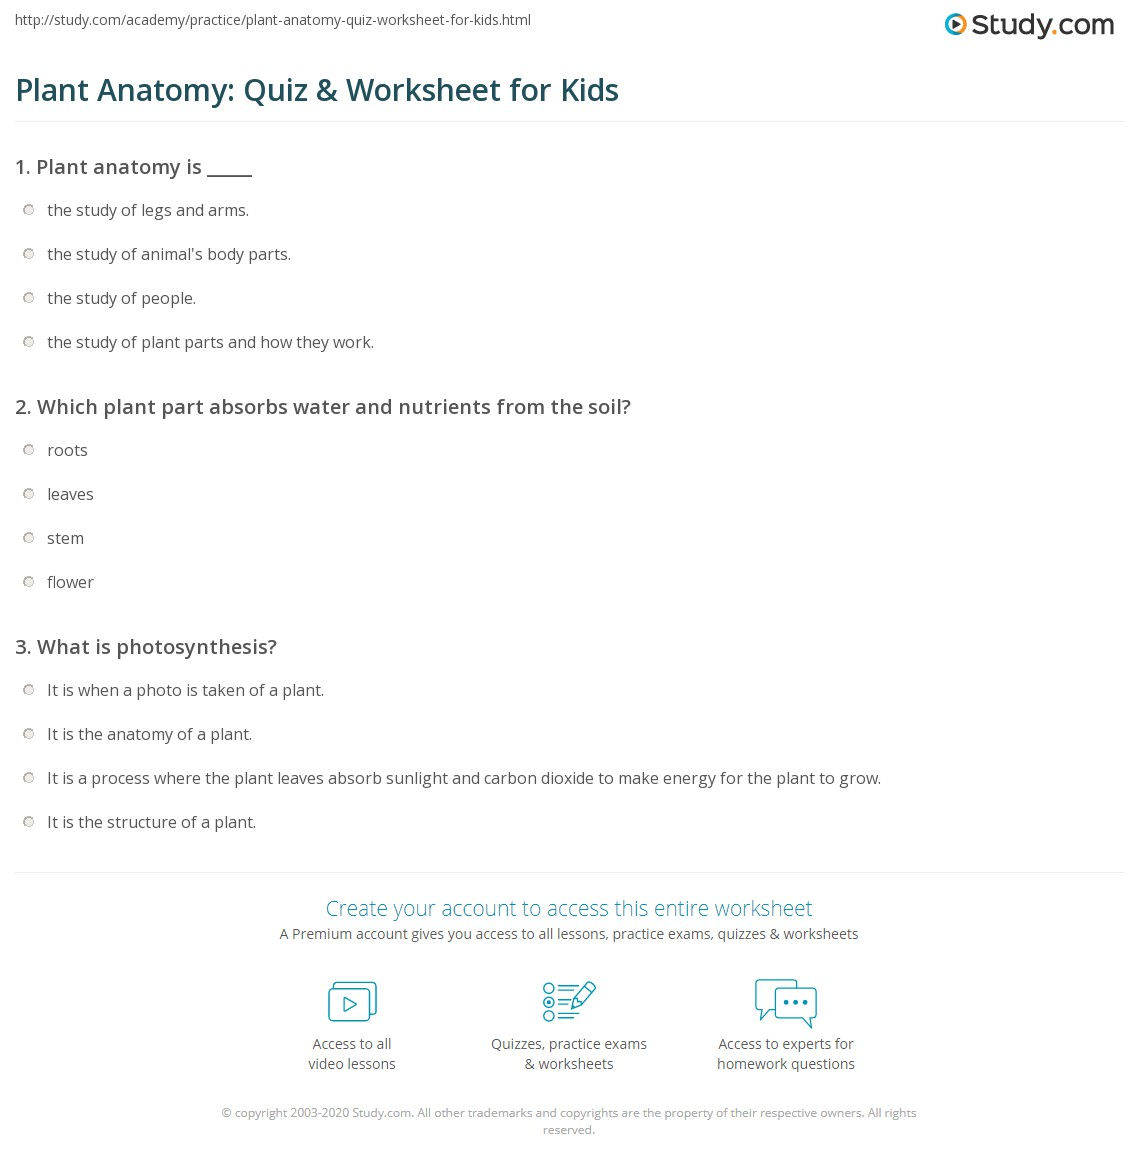 Plant Anatomy: Quiz & Worksheet for Kids | Study.com